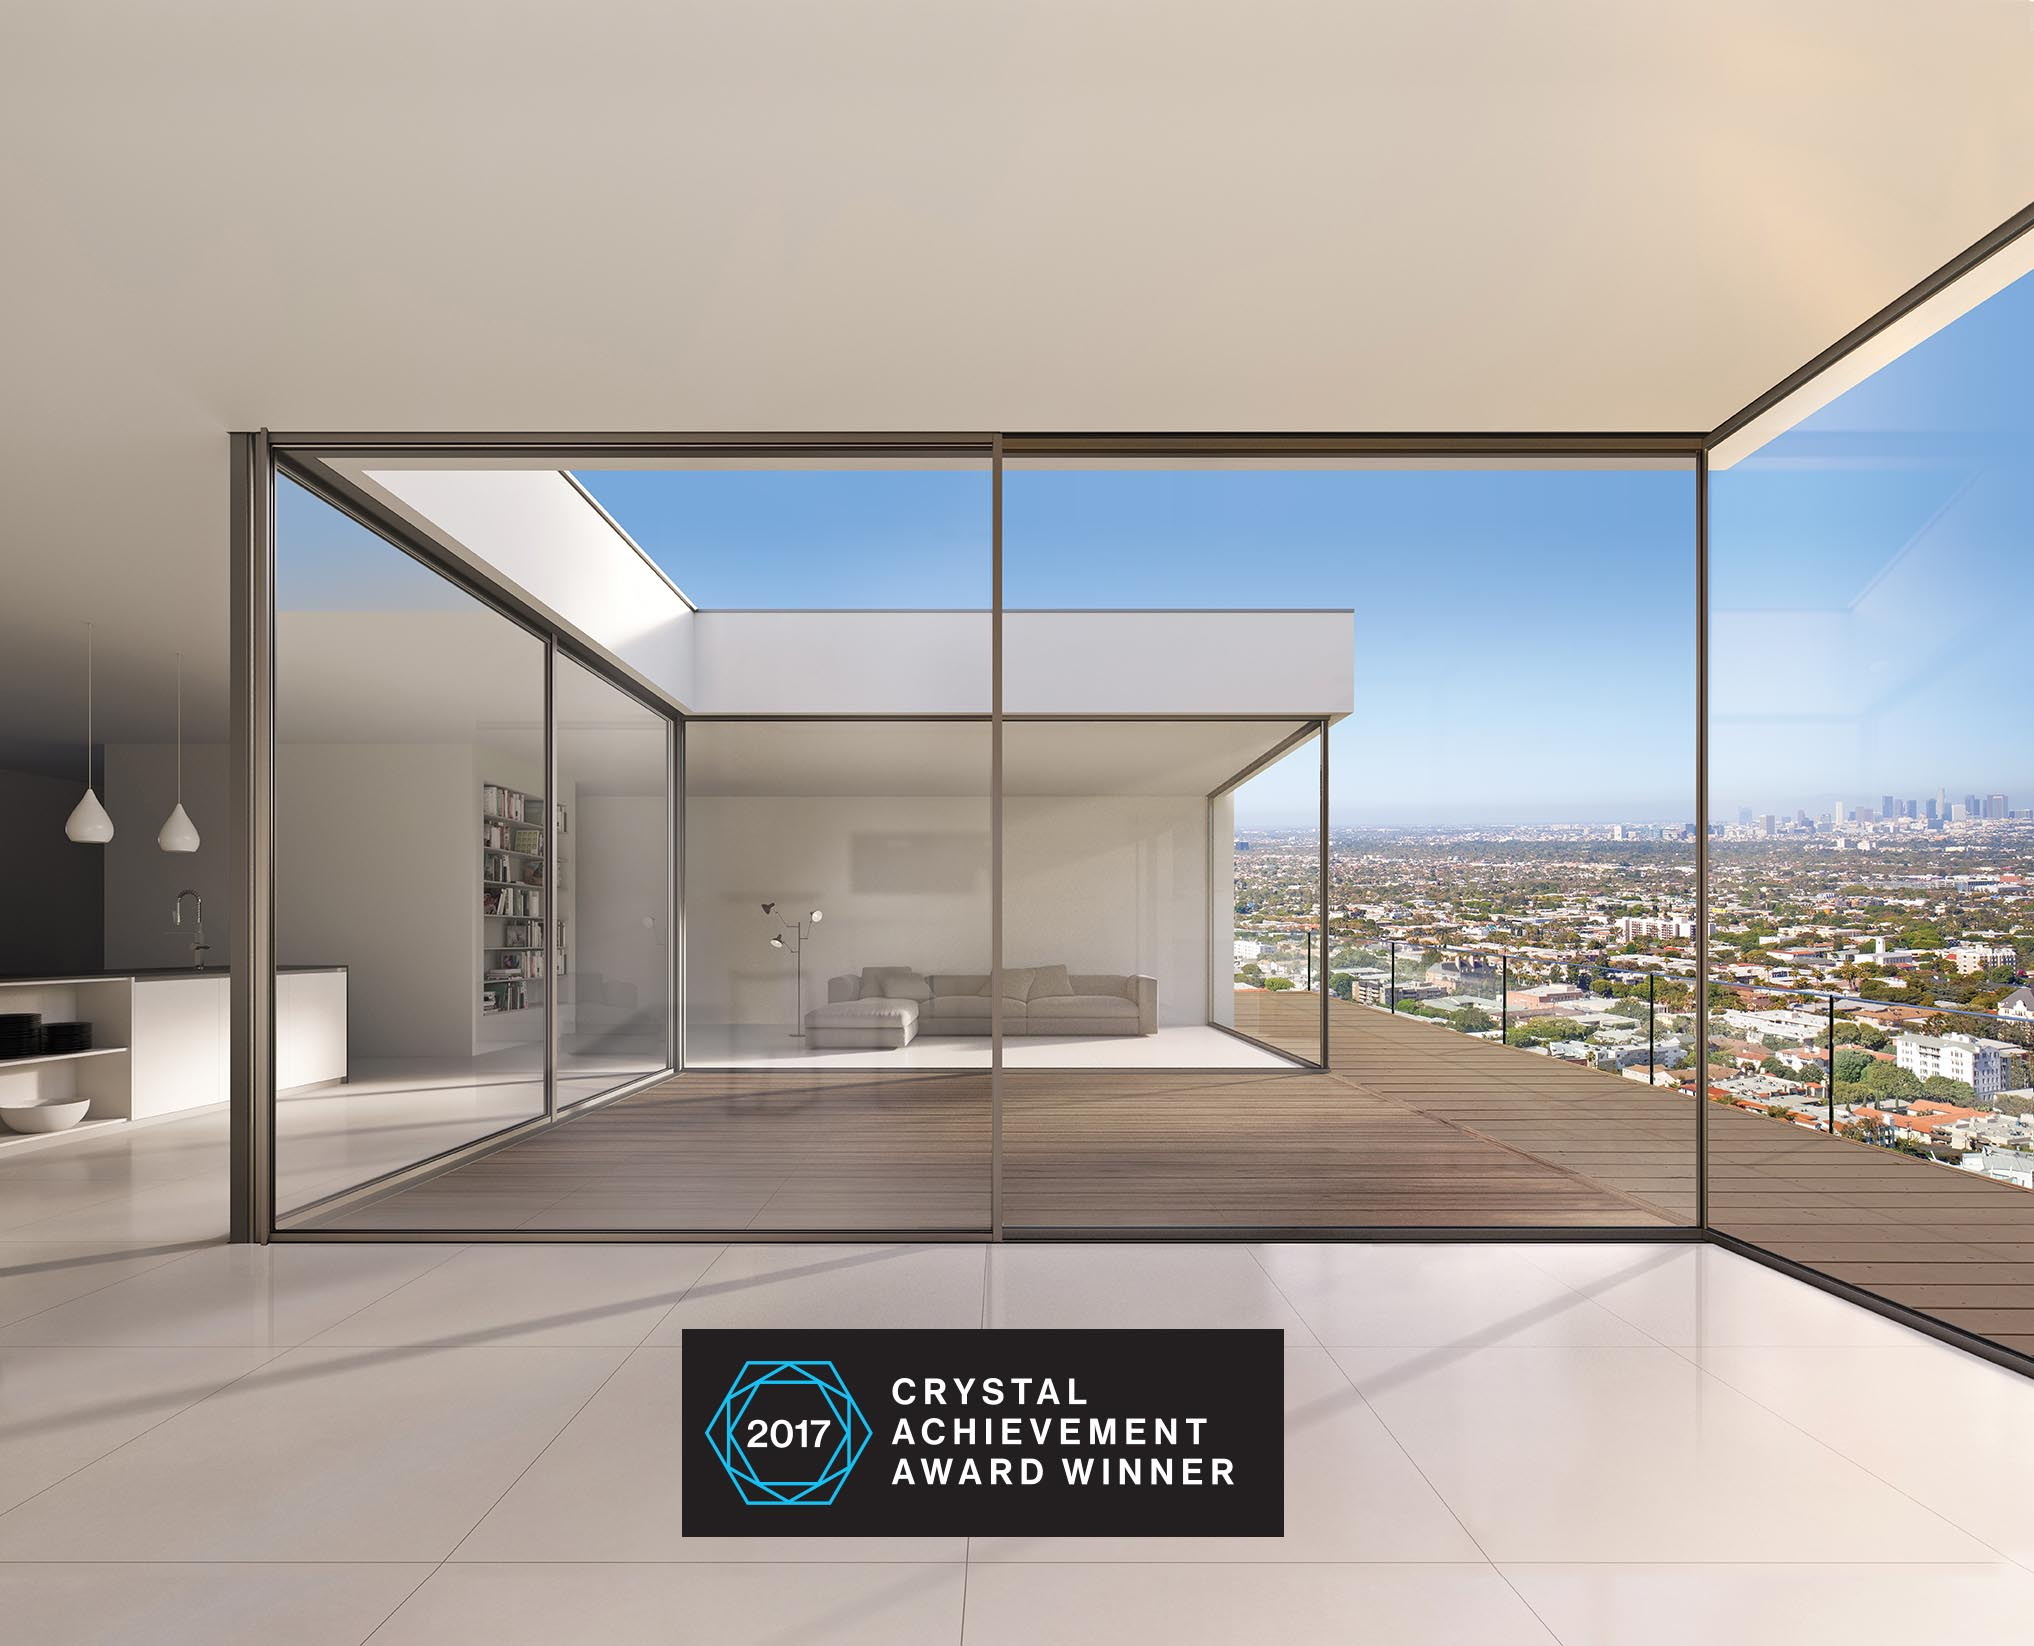 Cero wins crystal achievement award nanawall for Sliding glass wall systems